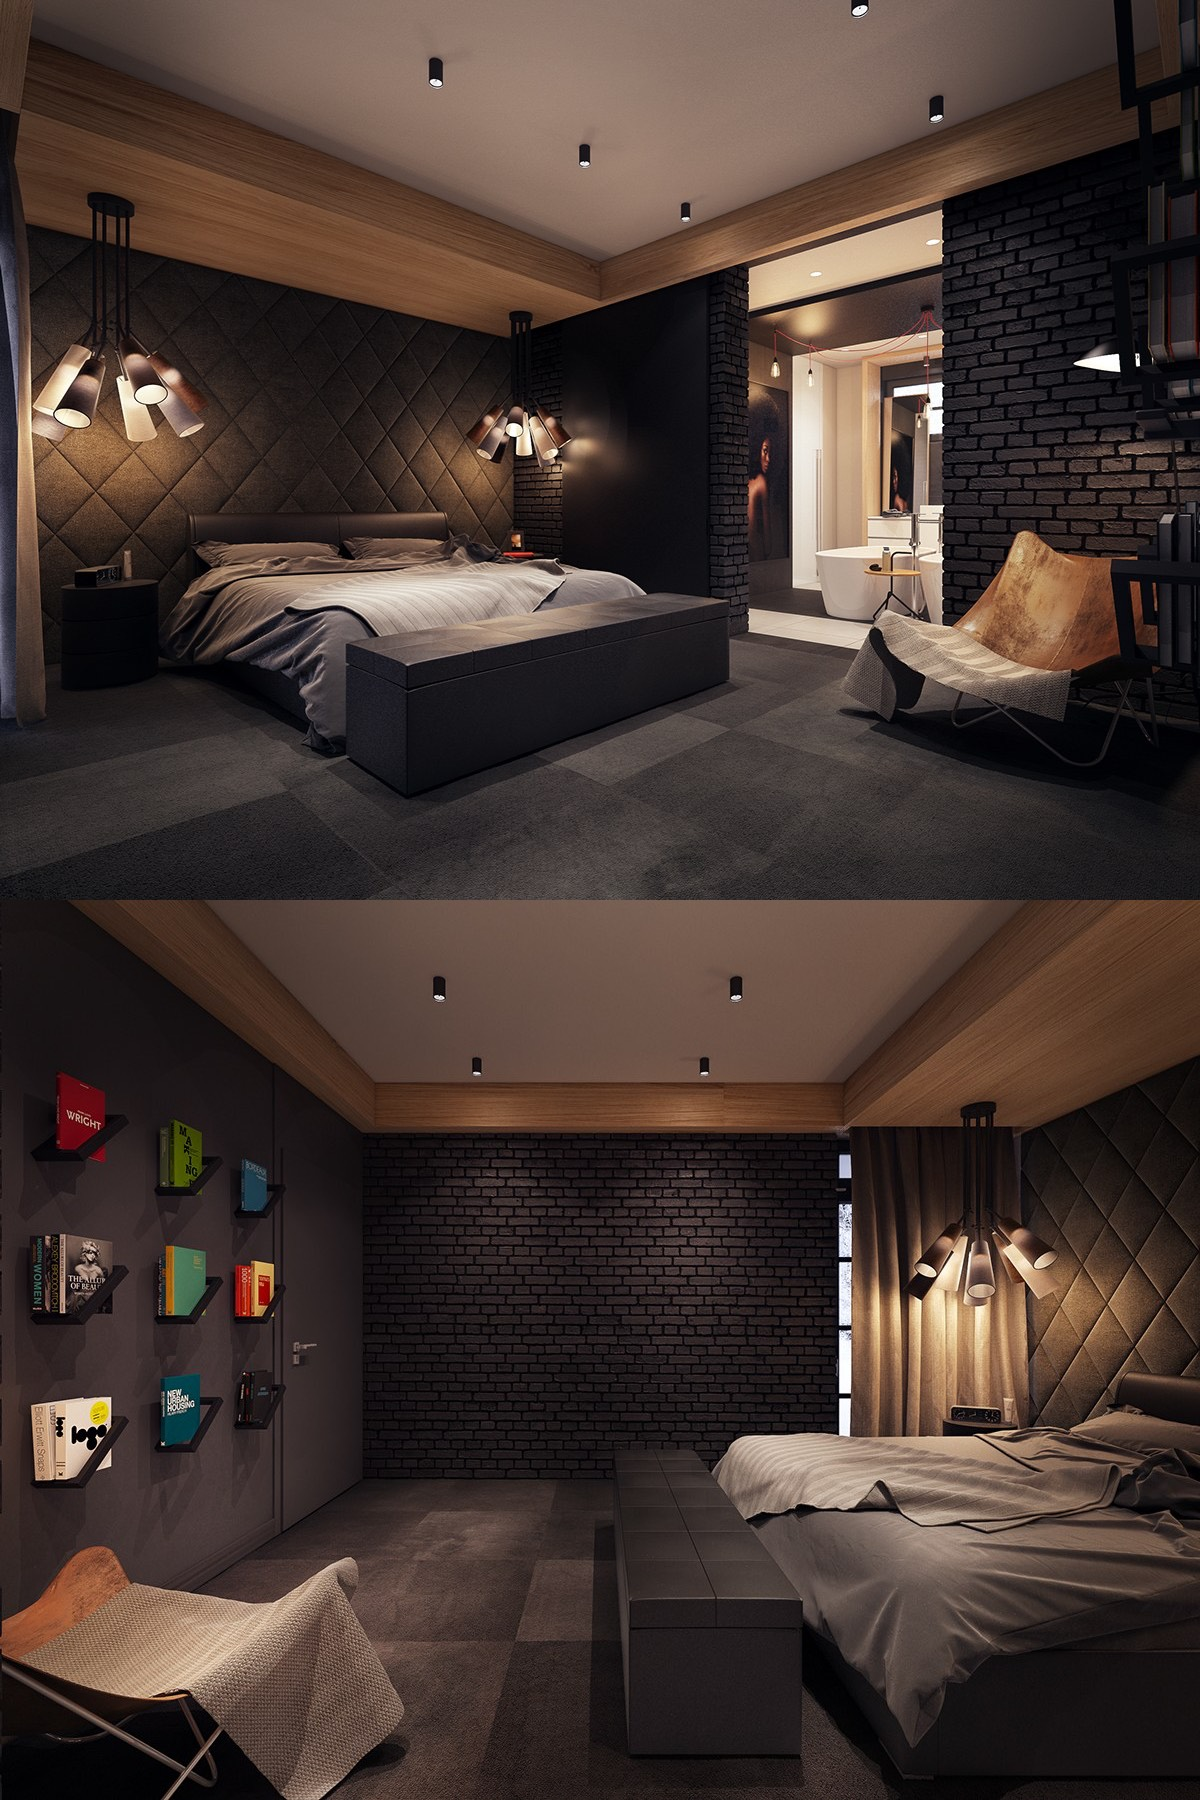 awesome interior bedroom design - Show Bedroom Designs